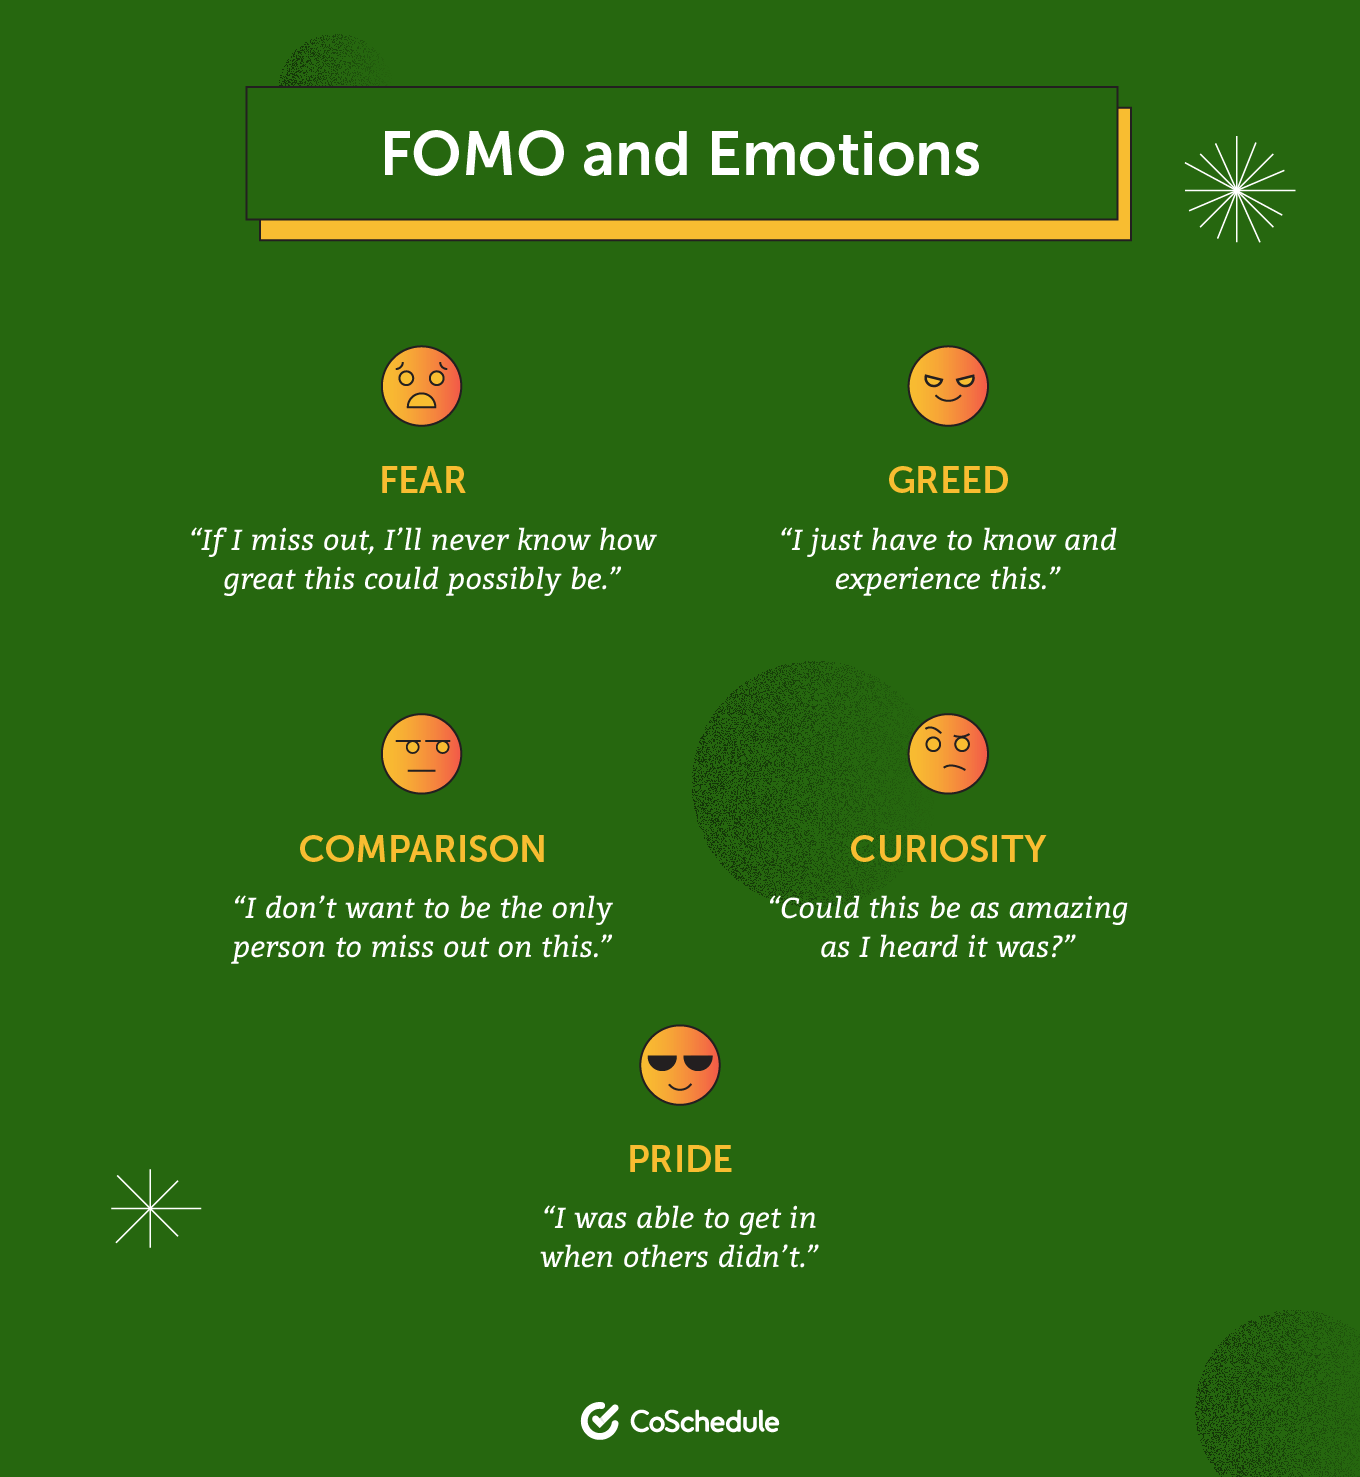 FOMO and emotions